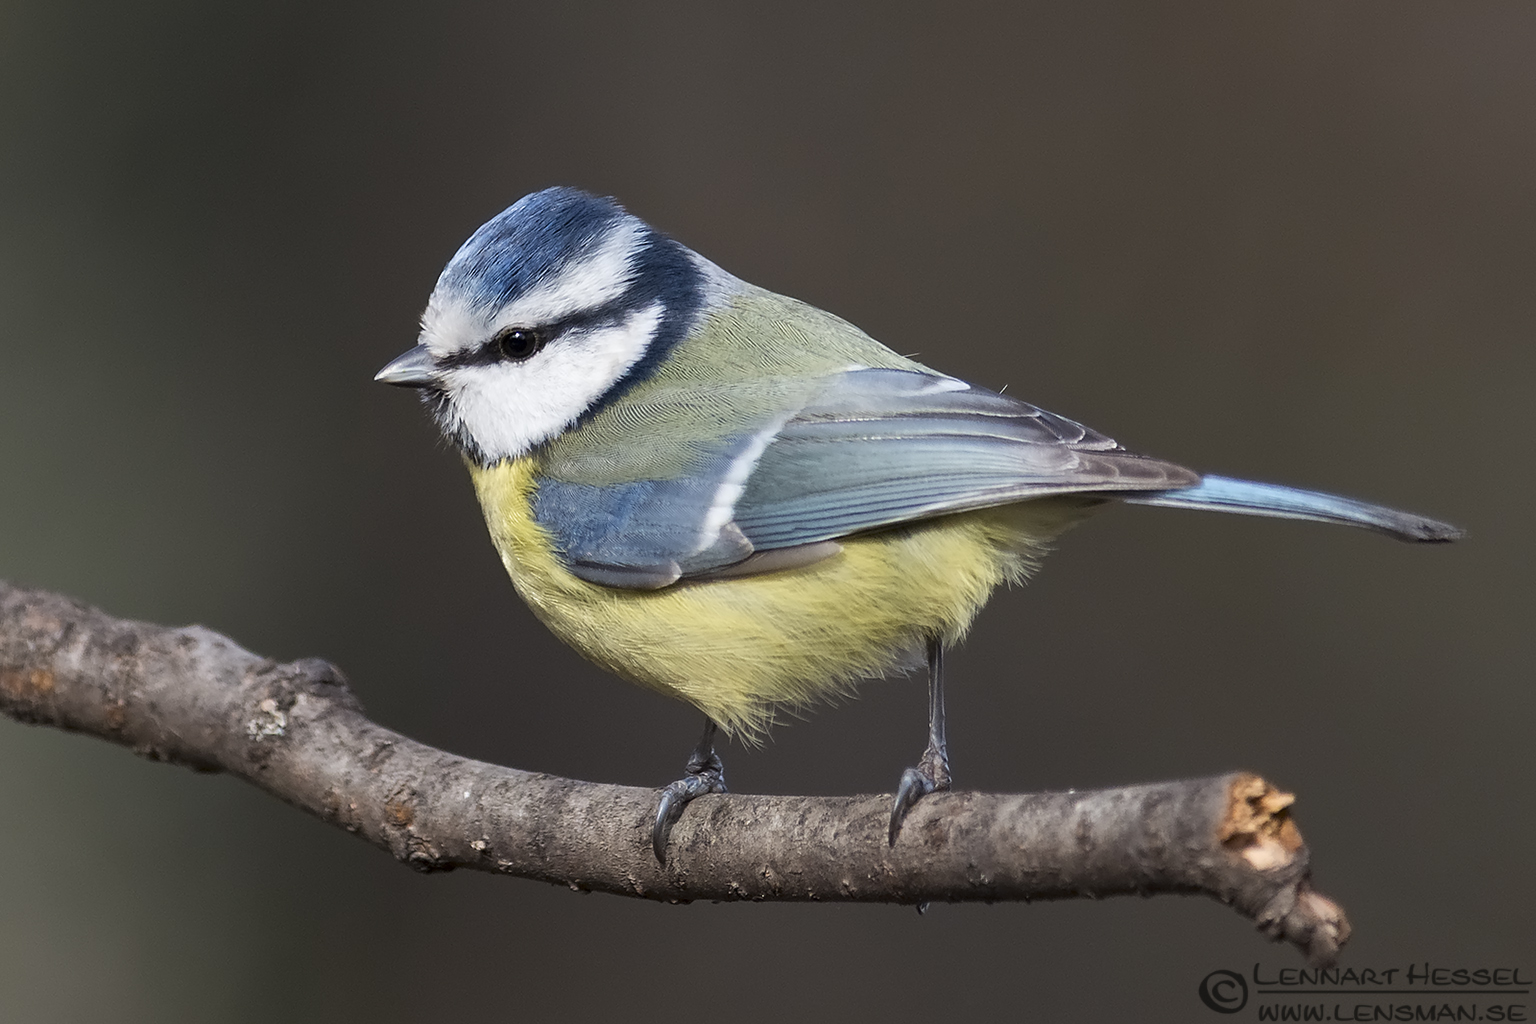 Eureopean Blue Tit in Hungary